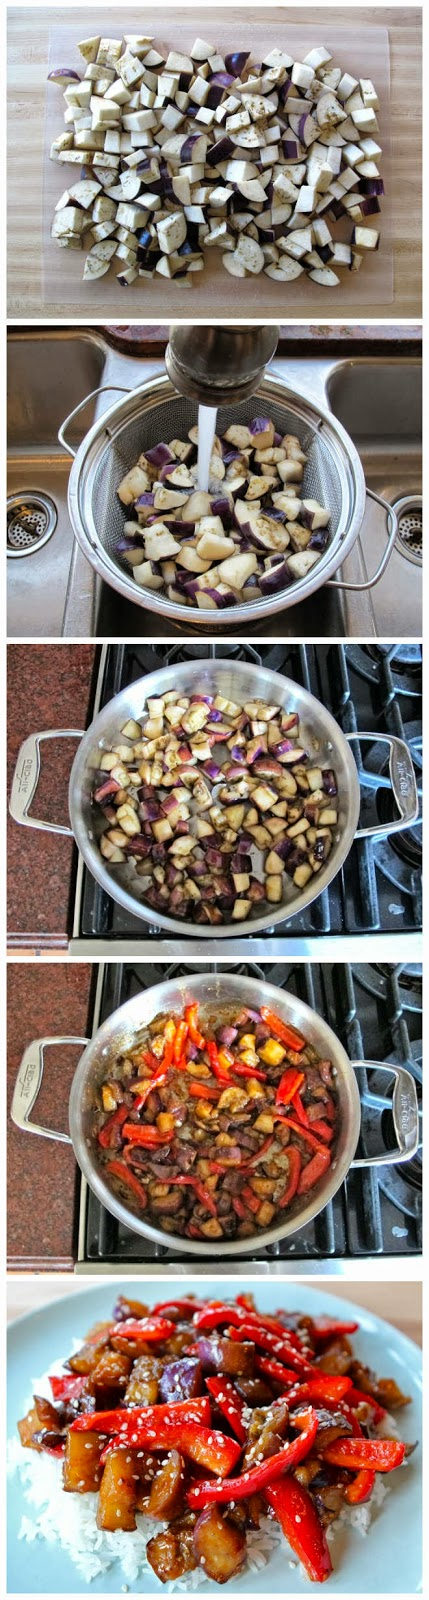 Sweet and Sour Eggplant - RedStarRecipe